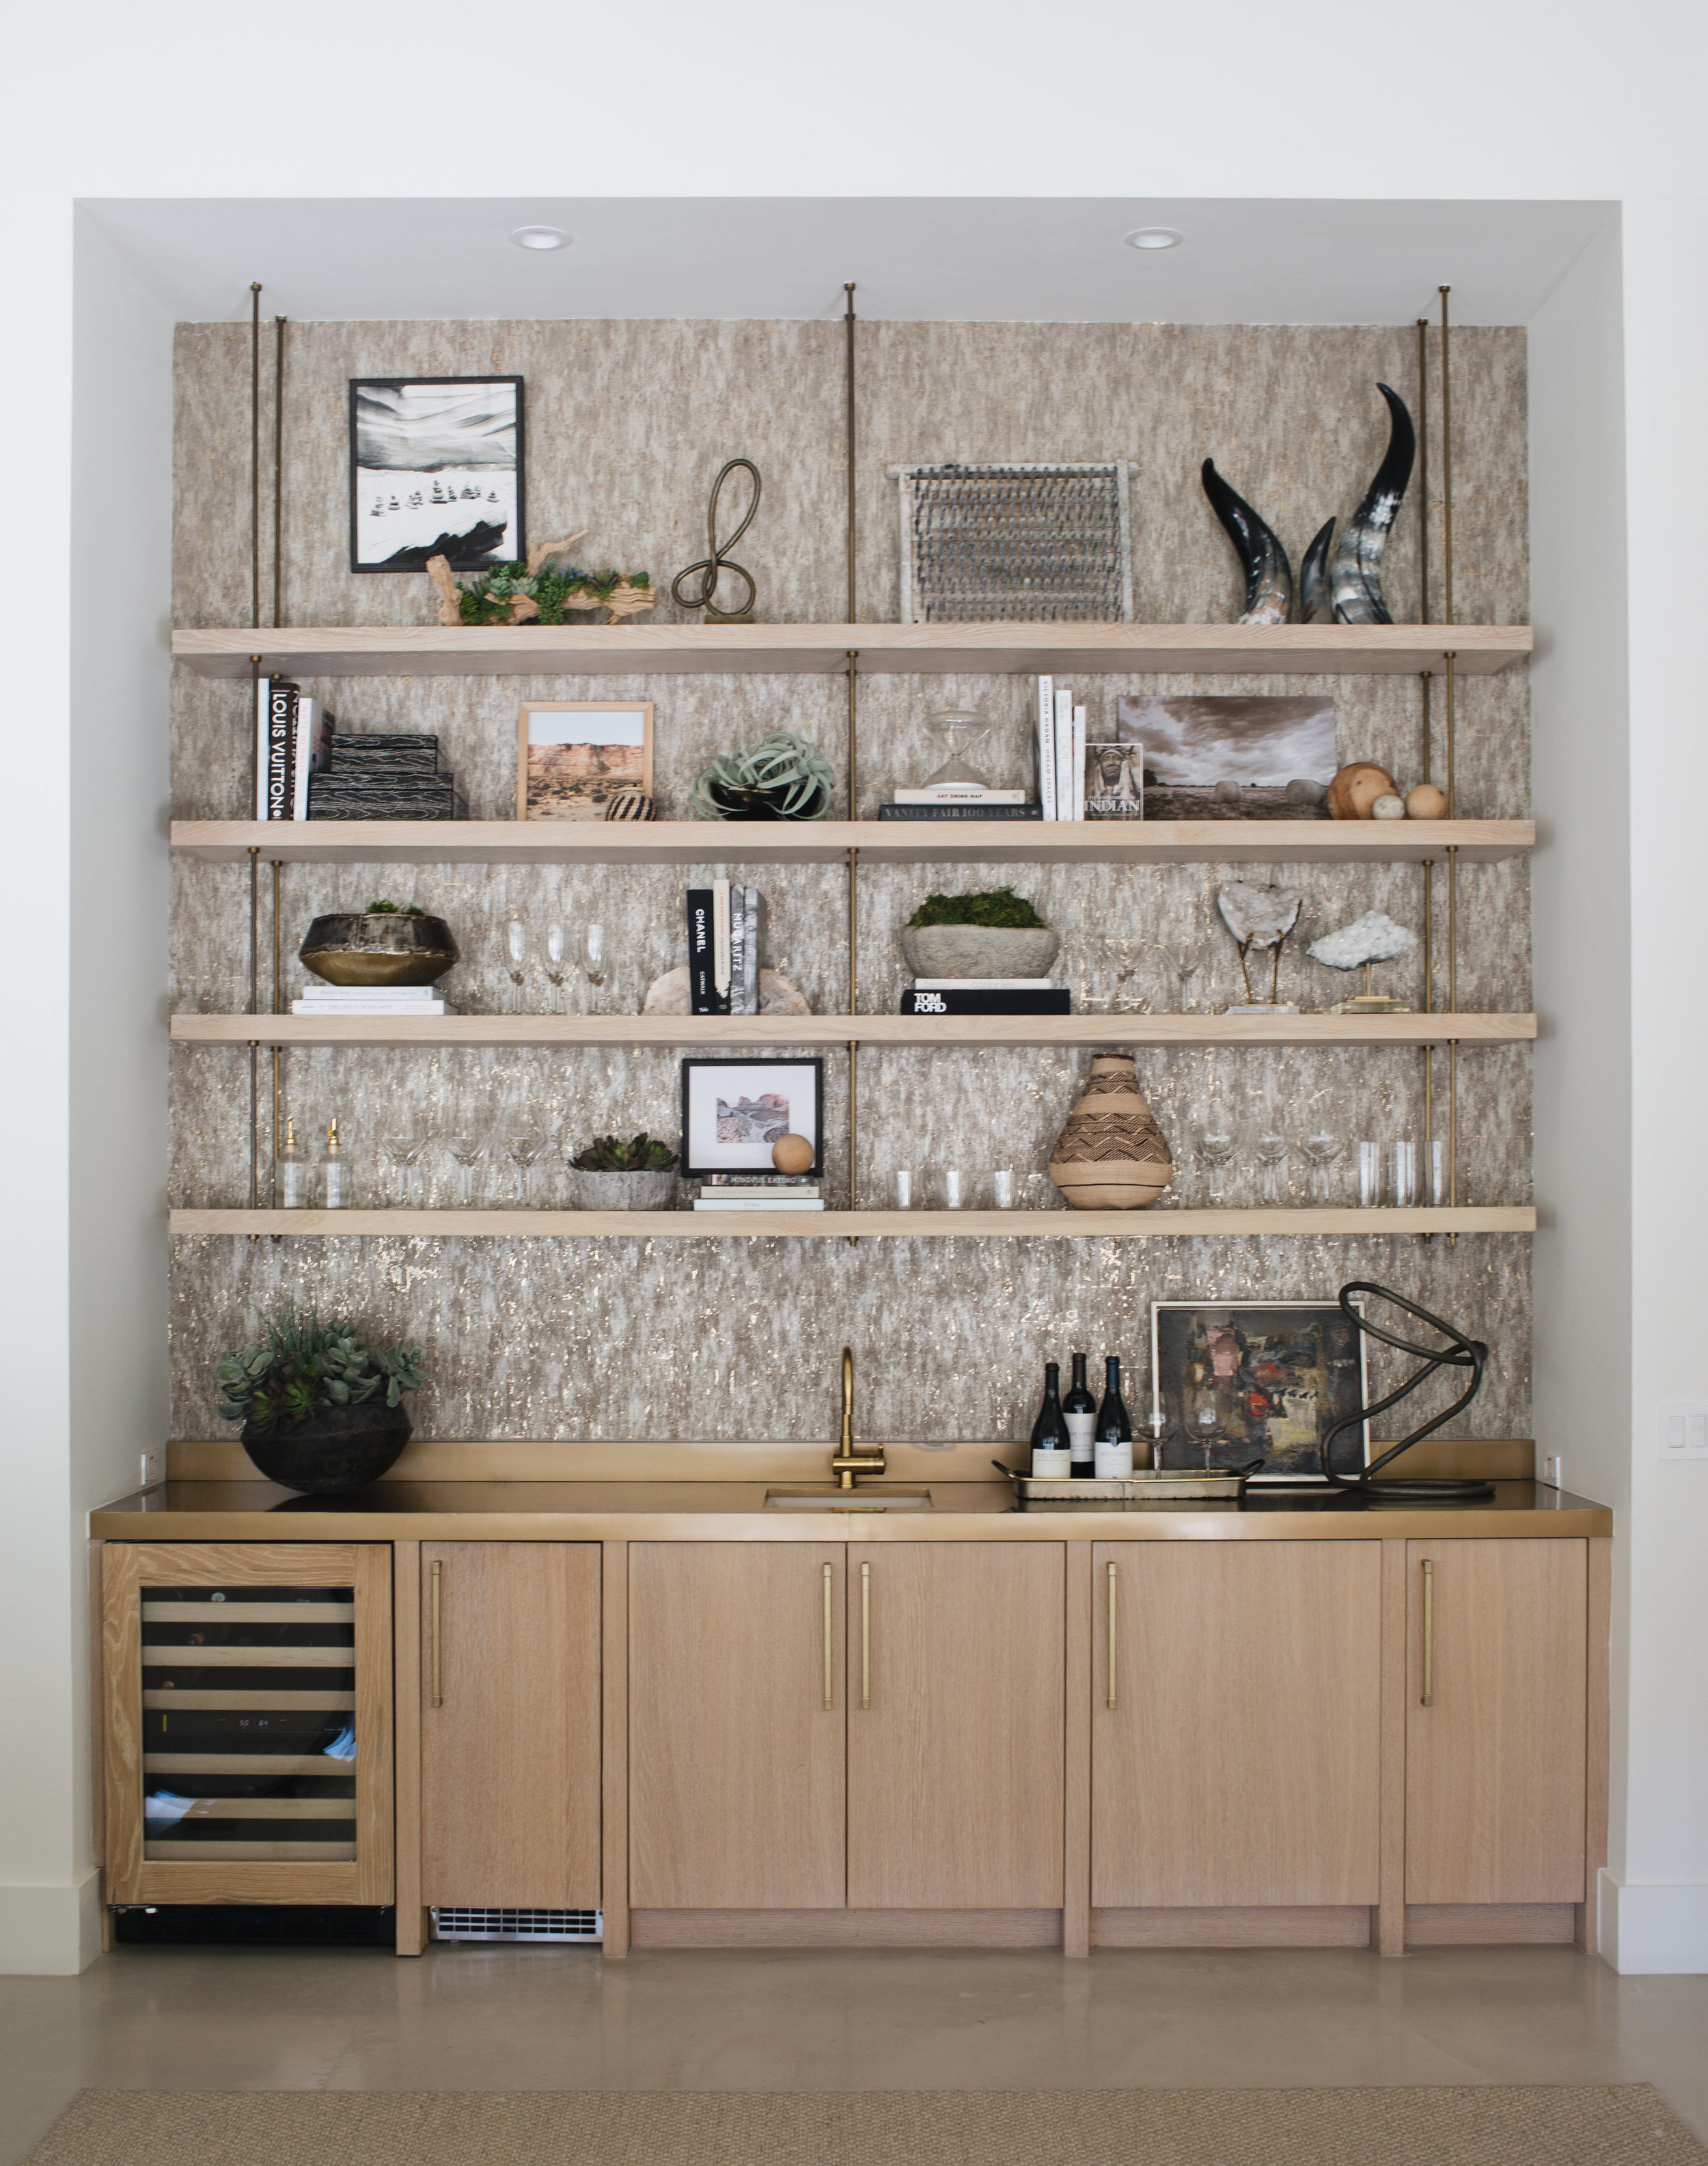 austin_interior_design_bookshelf.jpg